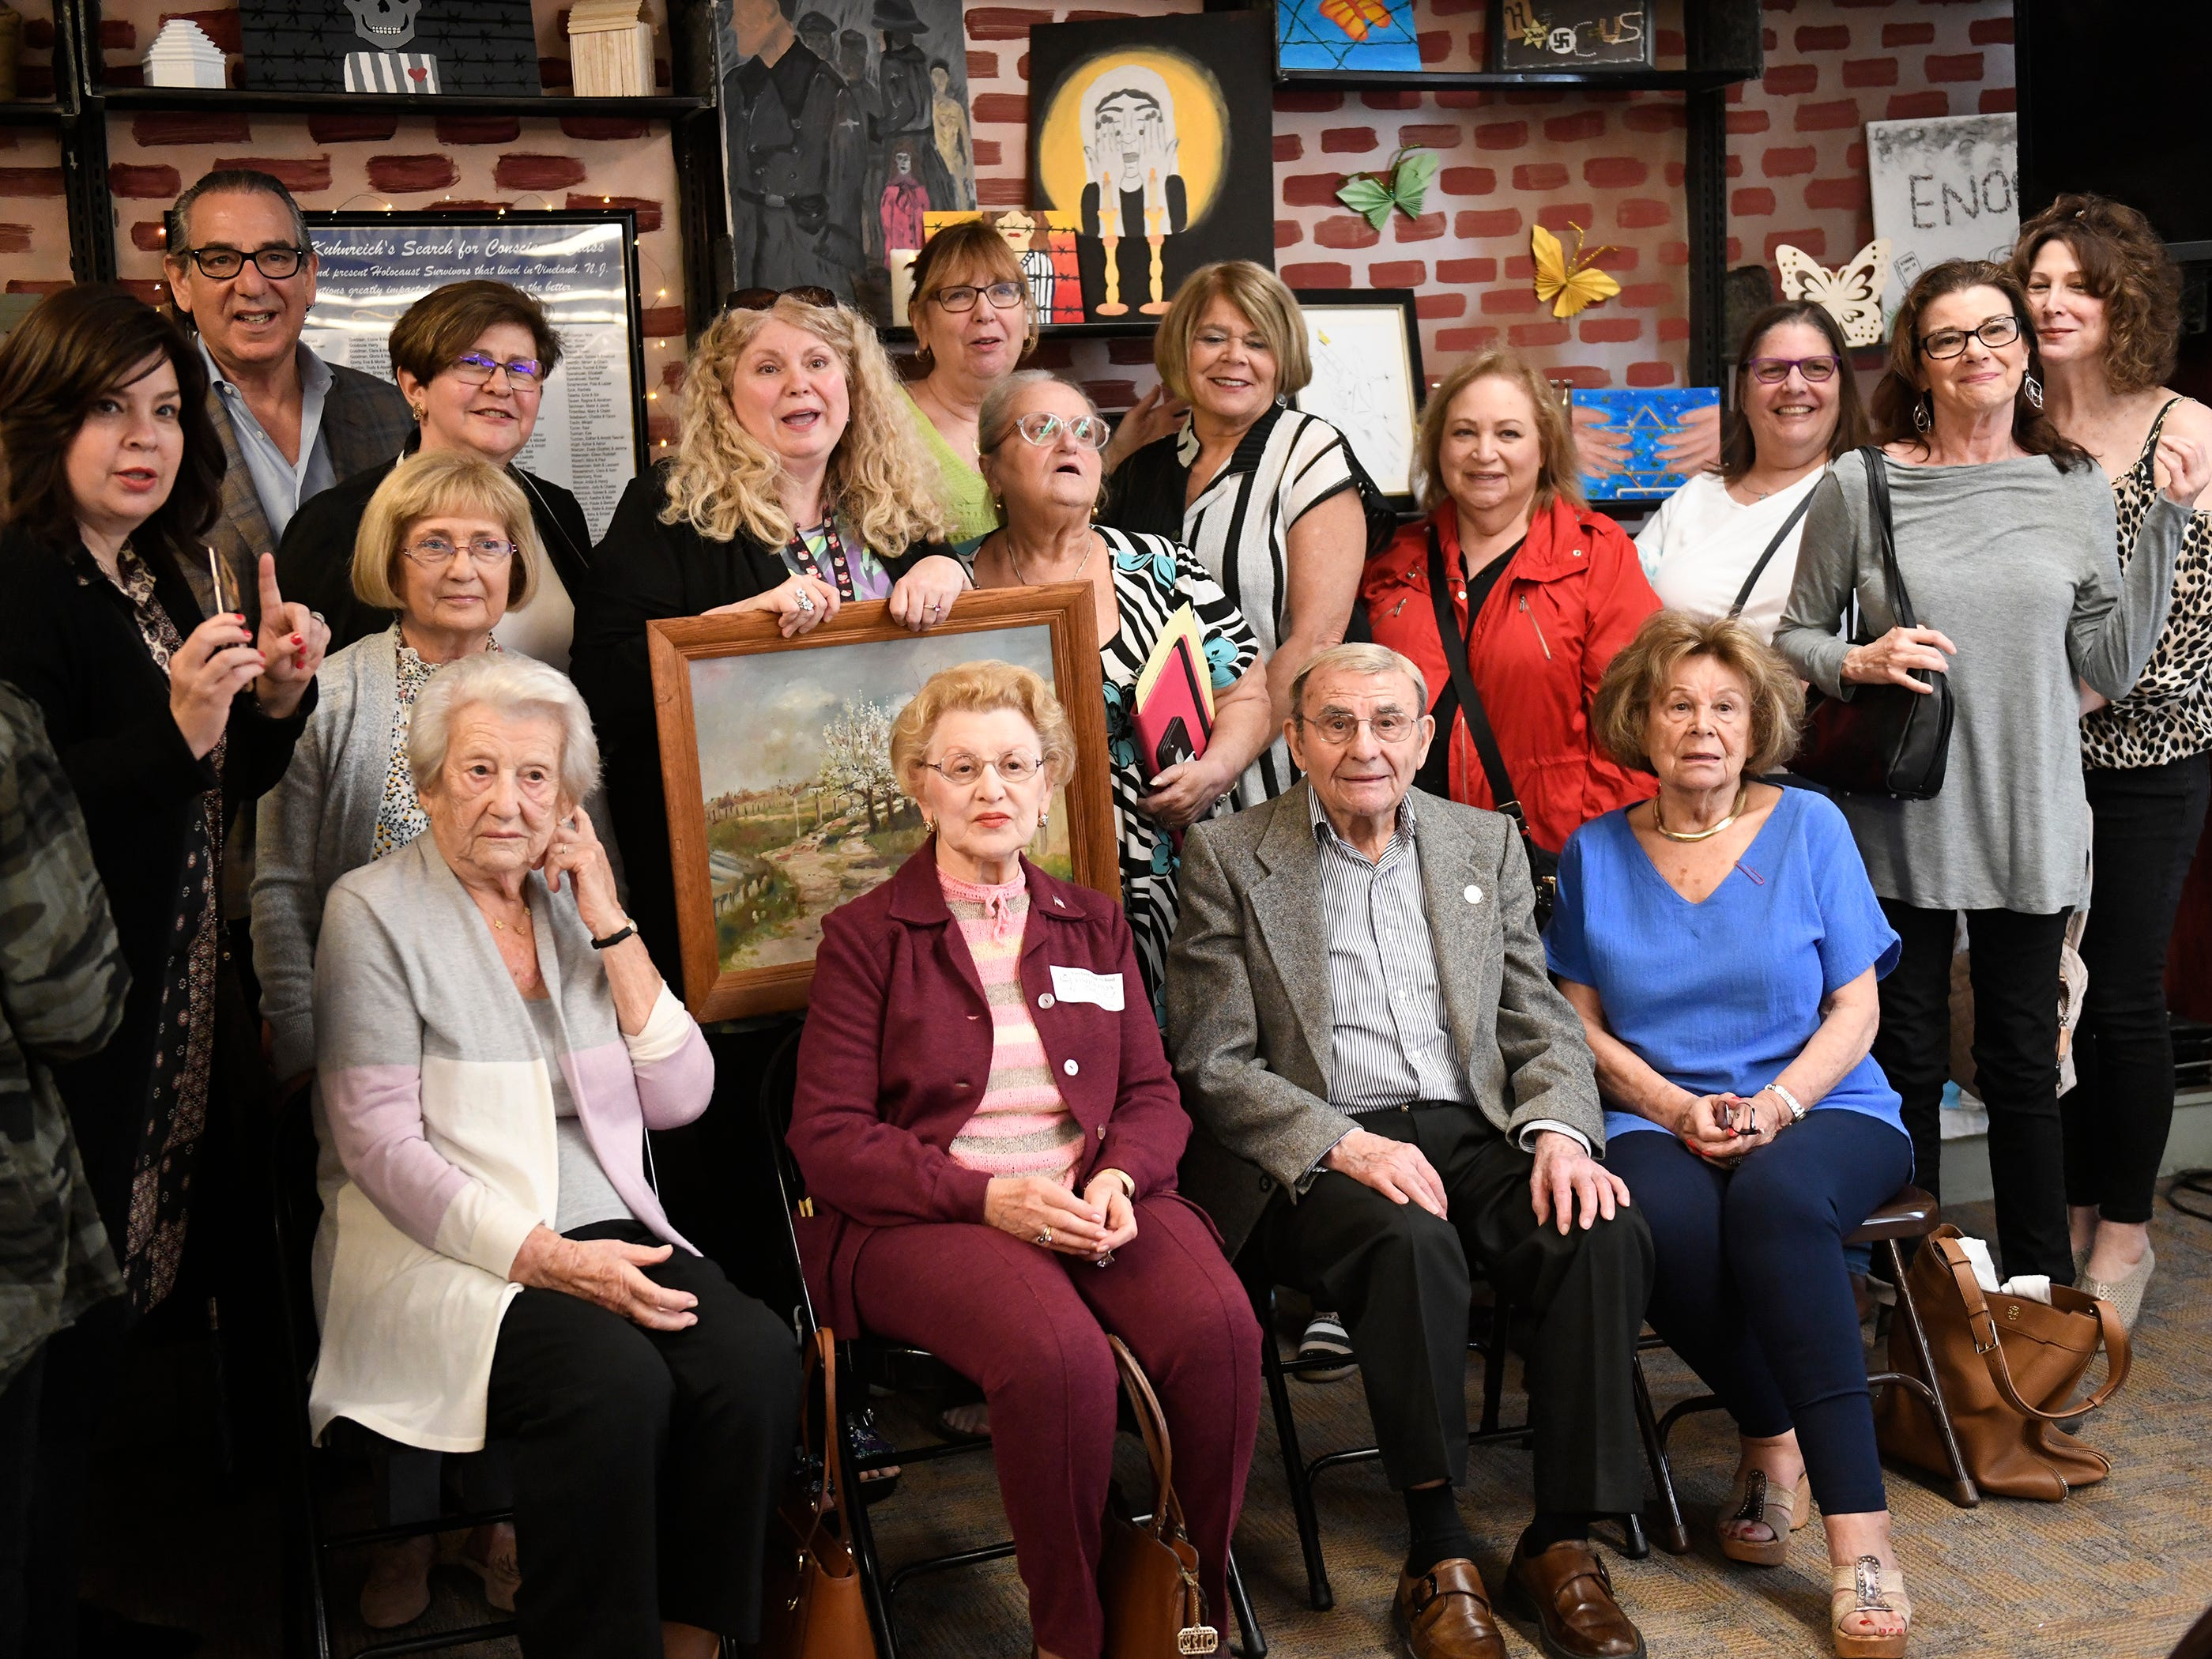 Holocaust survivors front row left to right, Elizabeth Roth, Genia Kuhnreich, Isadore Randel and Phyllis Dunkleman attend a dedication for the Kuhnreich/Teichman/Media Holocaust Research Center and Permanent Exhibit at Vineland High School.